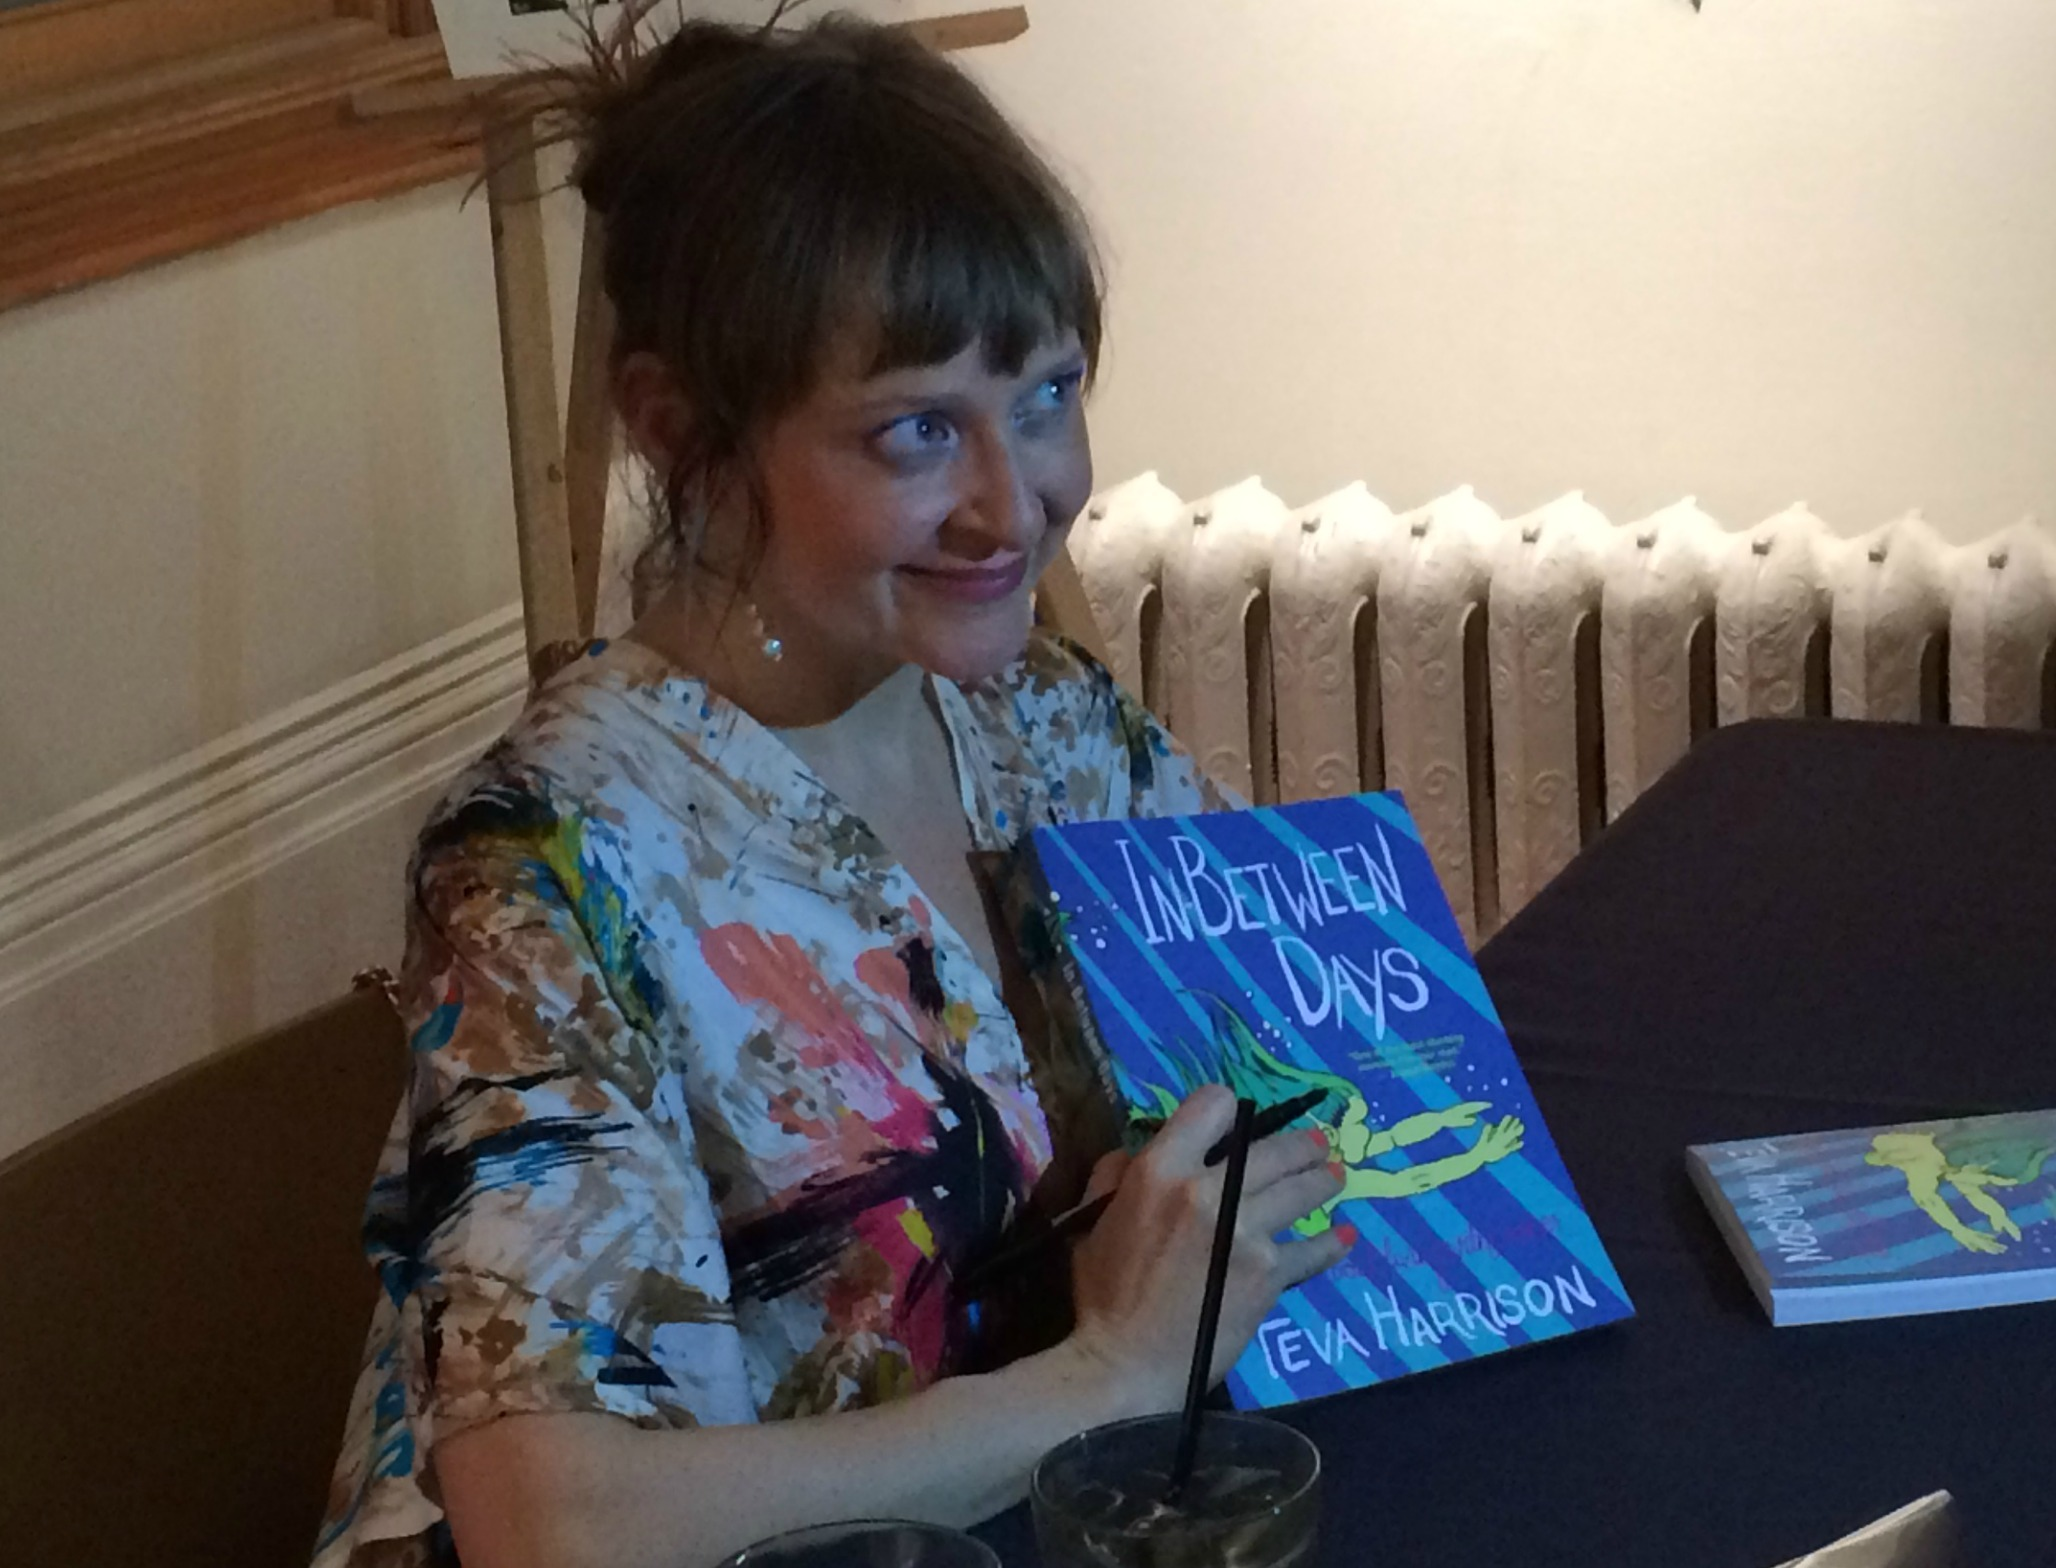 Author Teva Harrison signs books at the launch of her new graphic memoir about living with cancer.